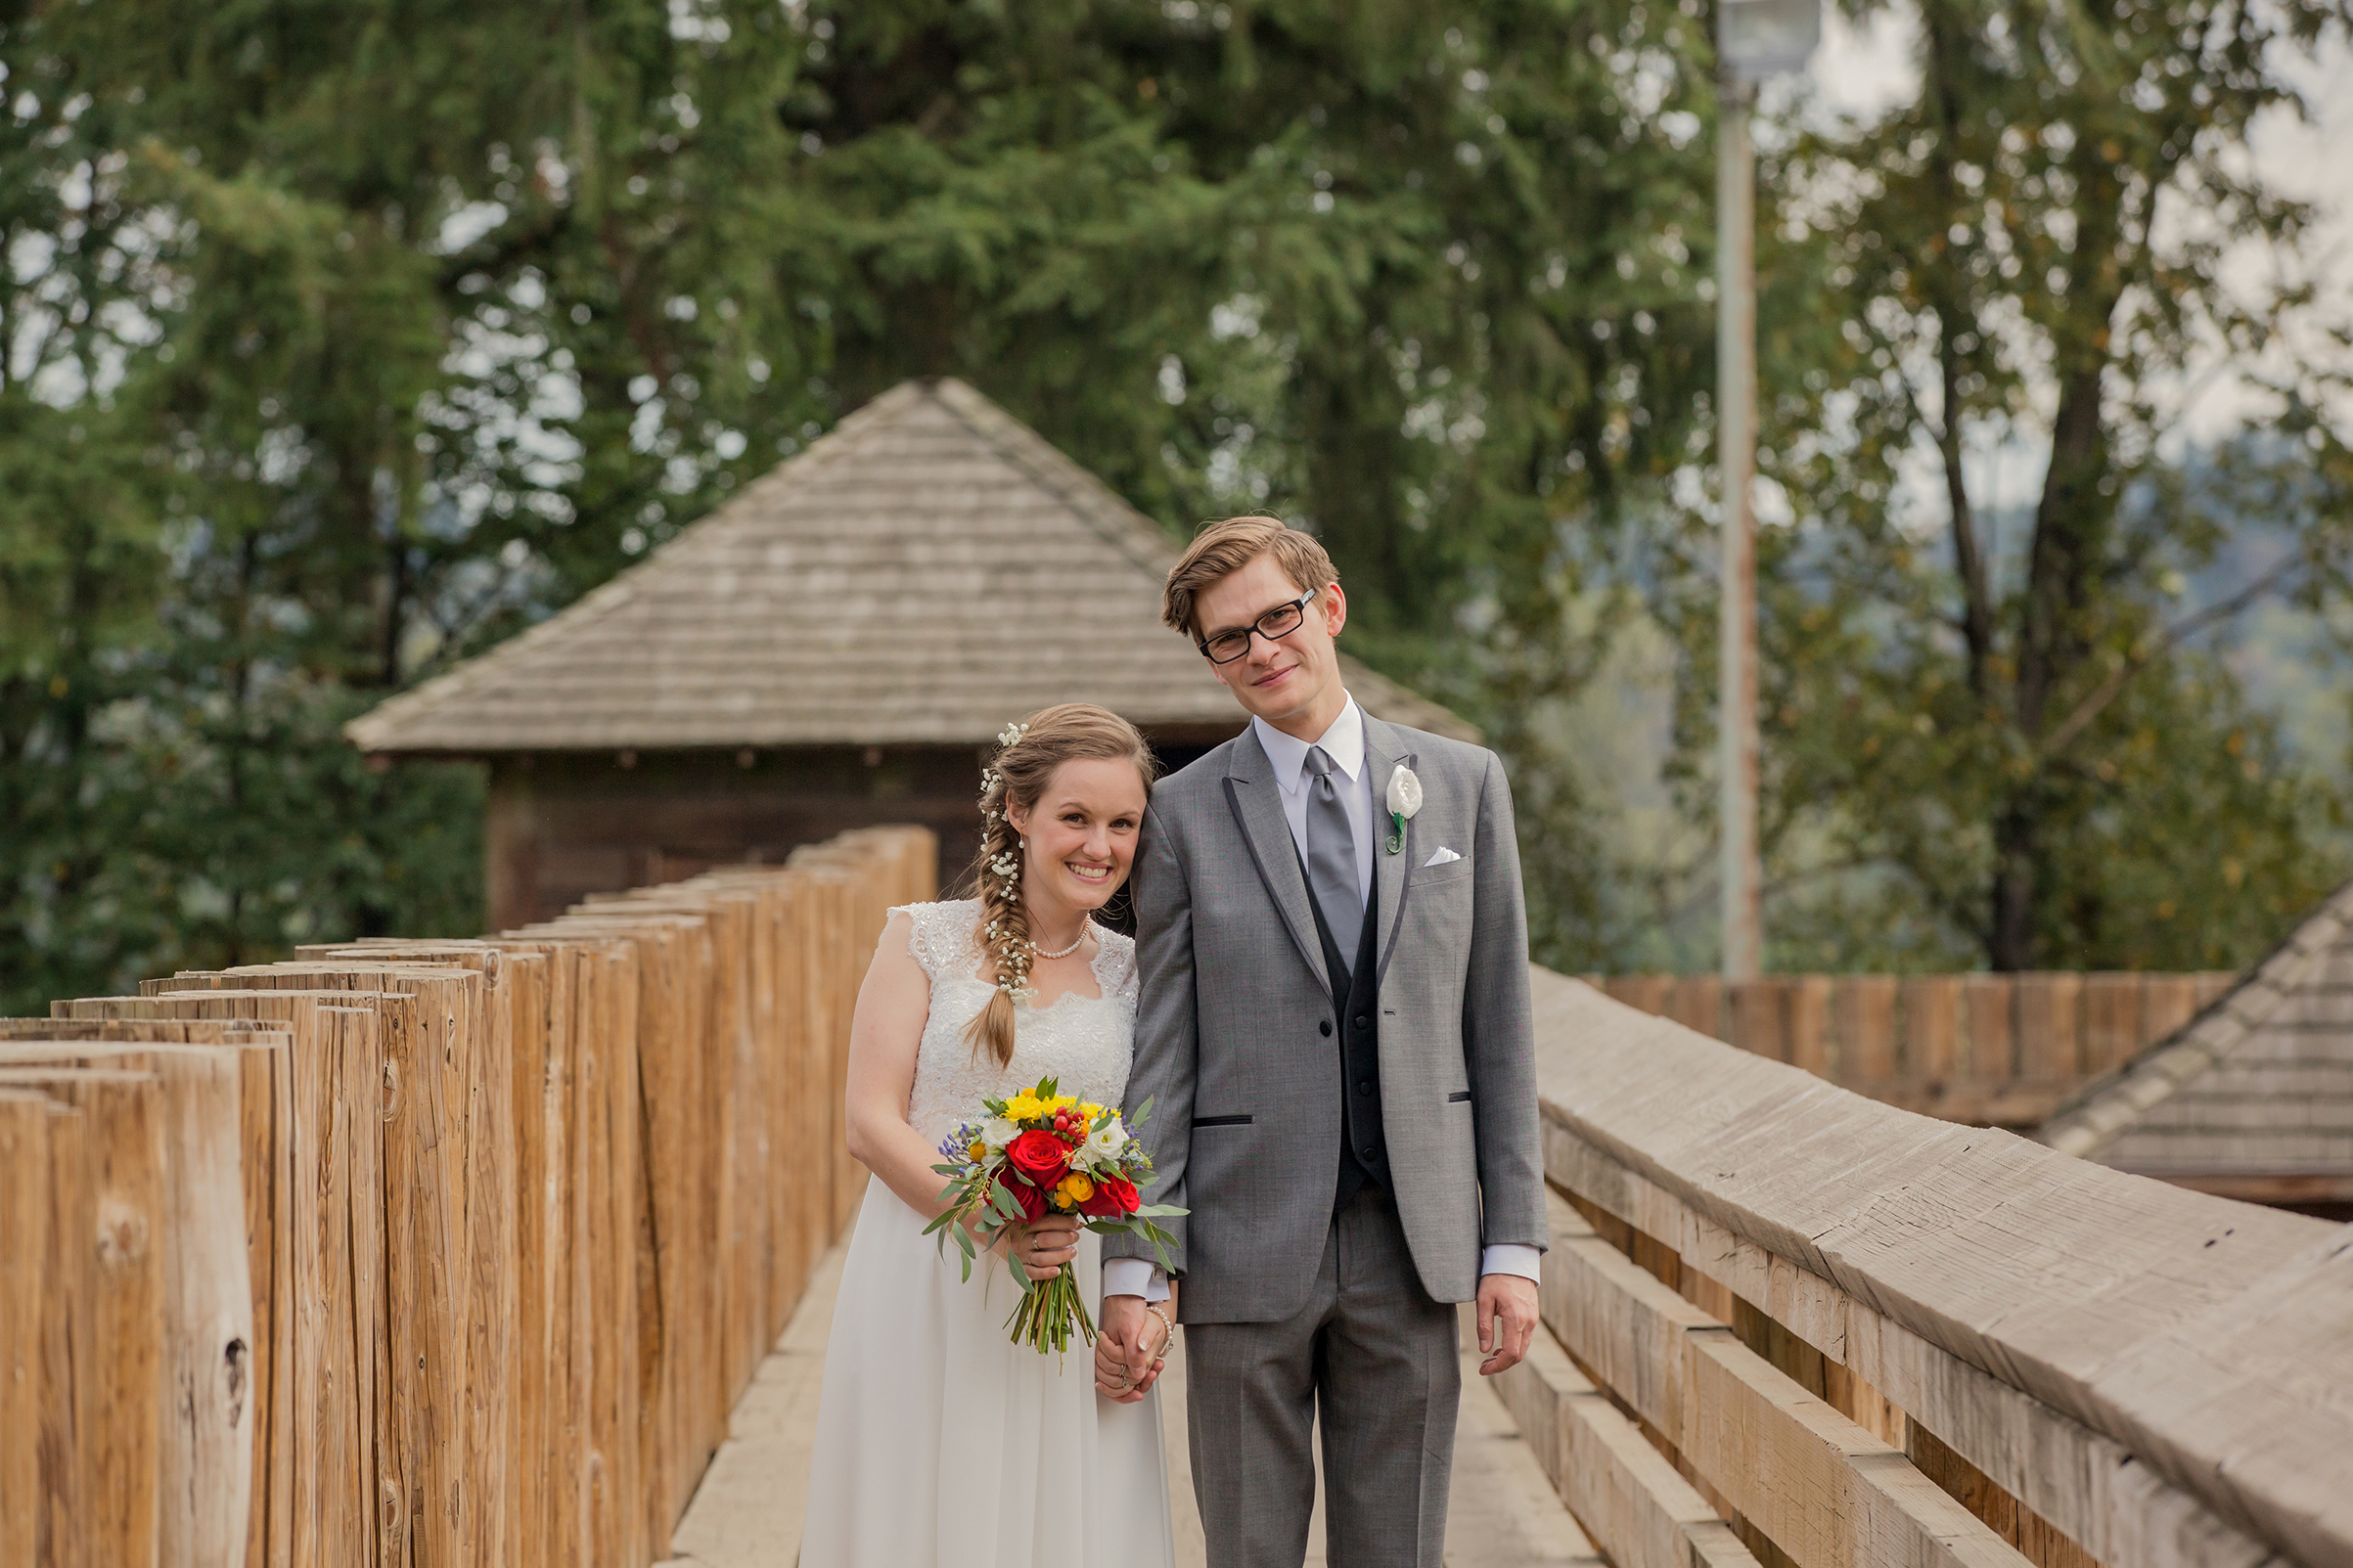 Dayna and Dylan - WT (224 of 793).jpg